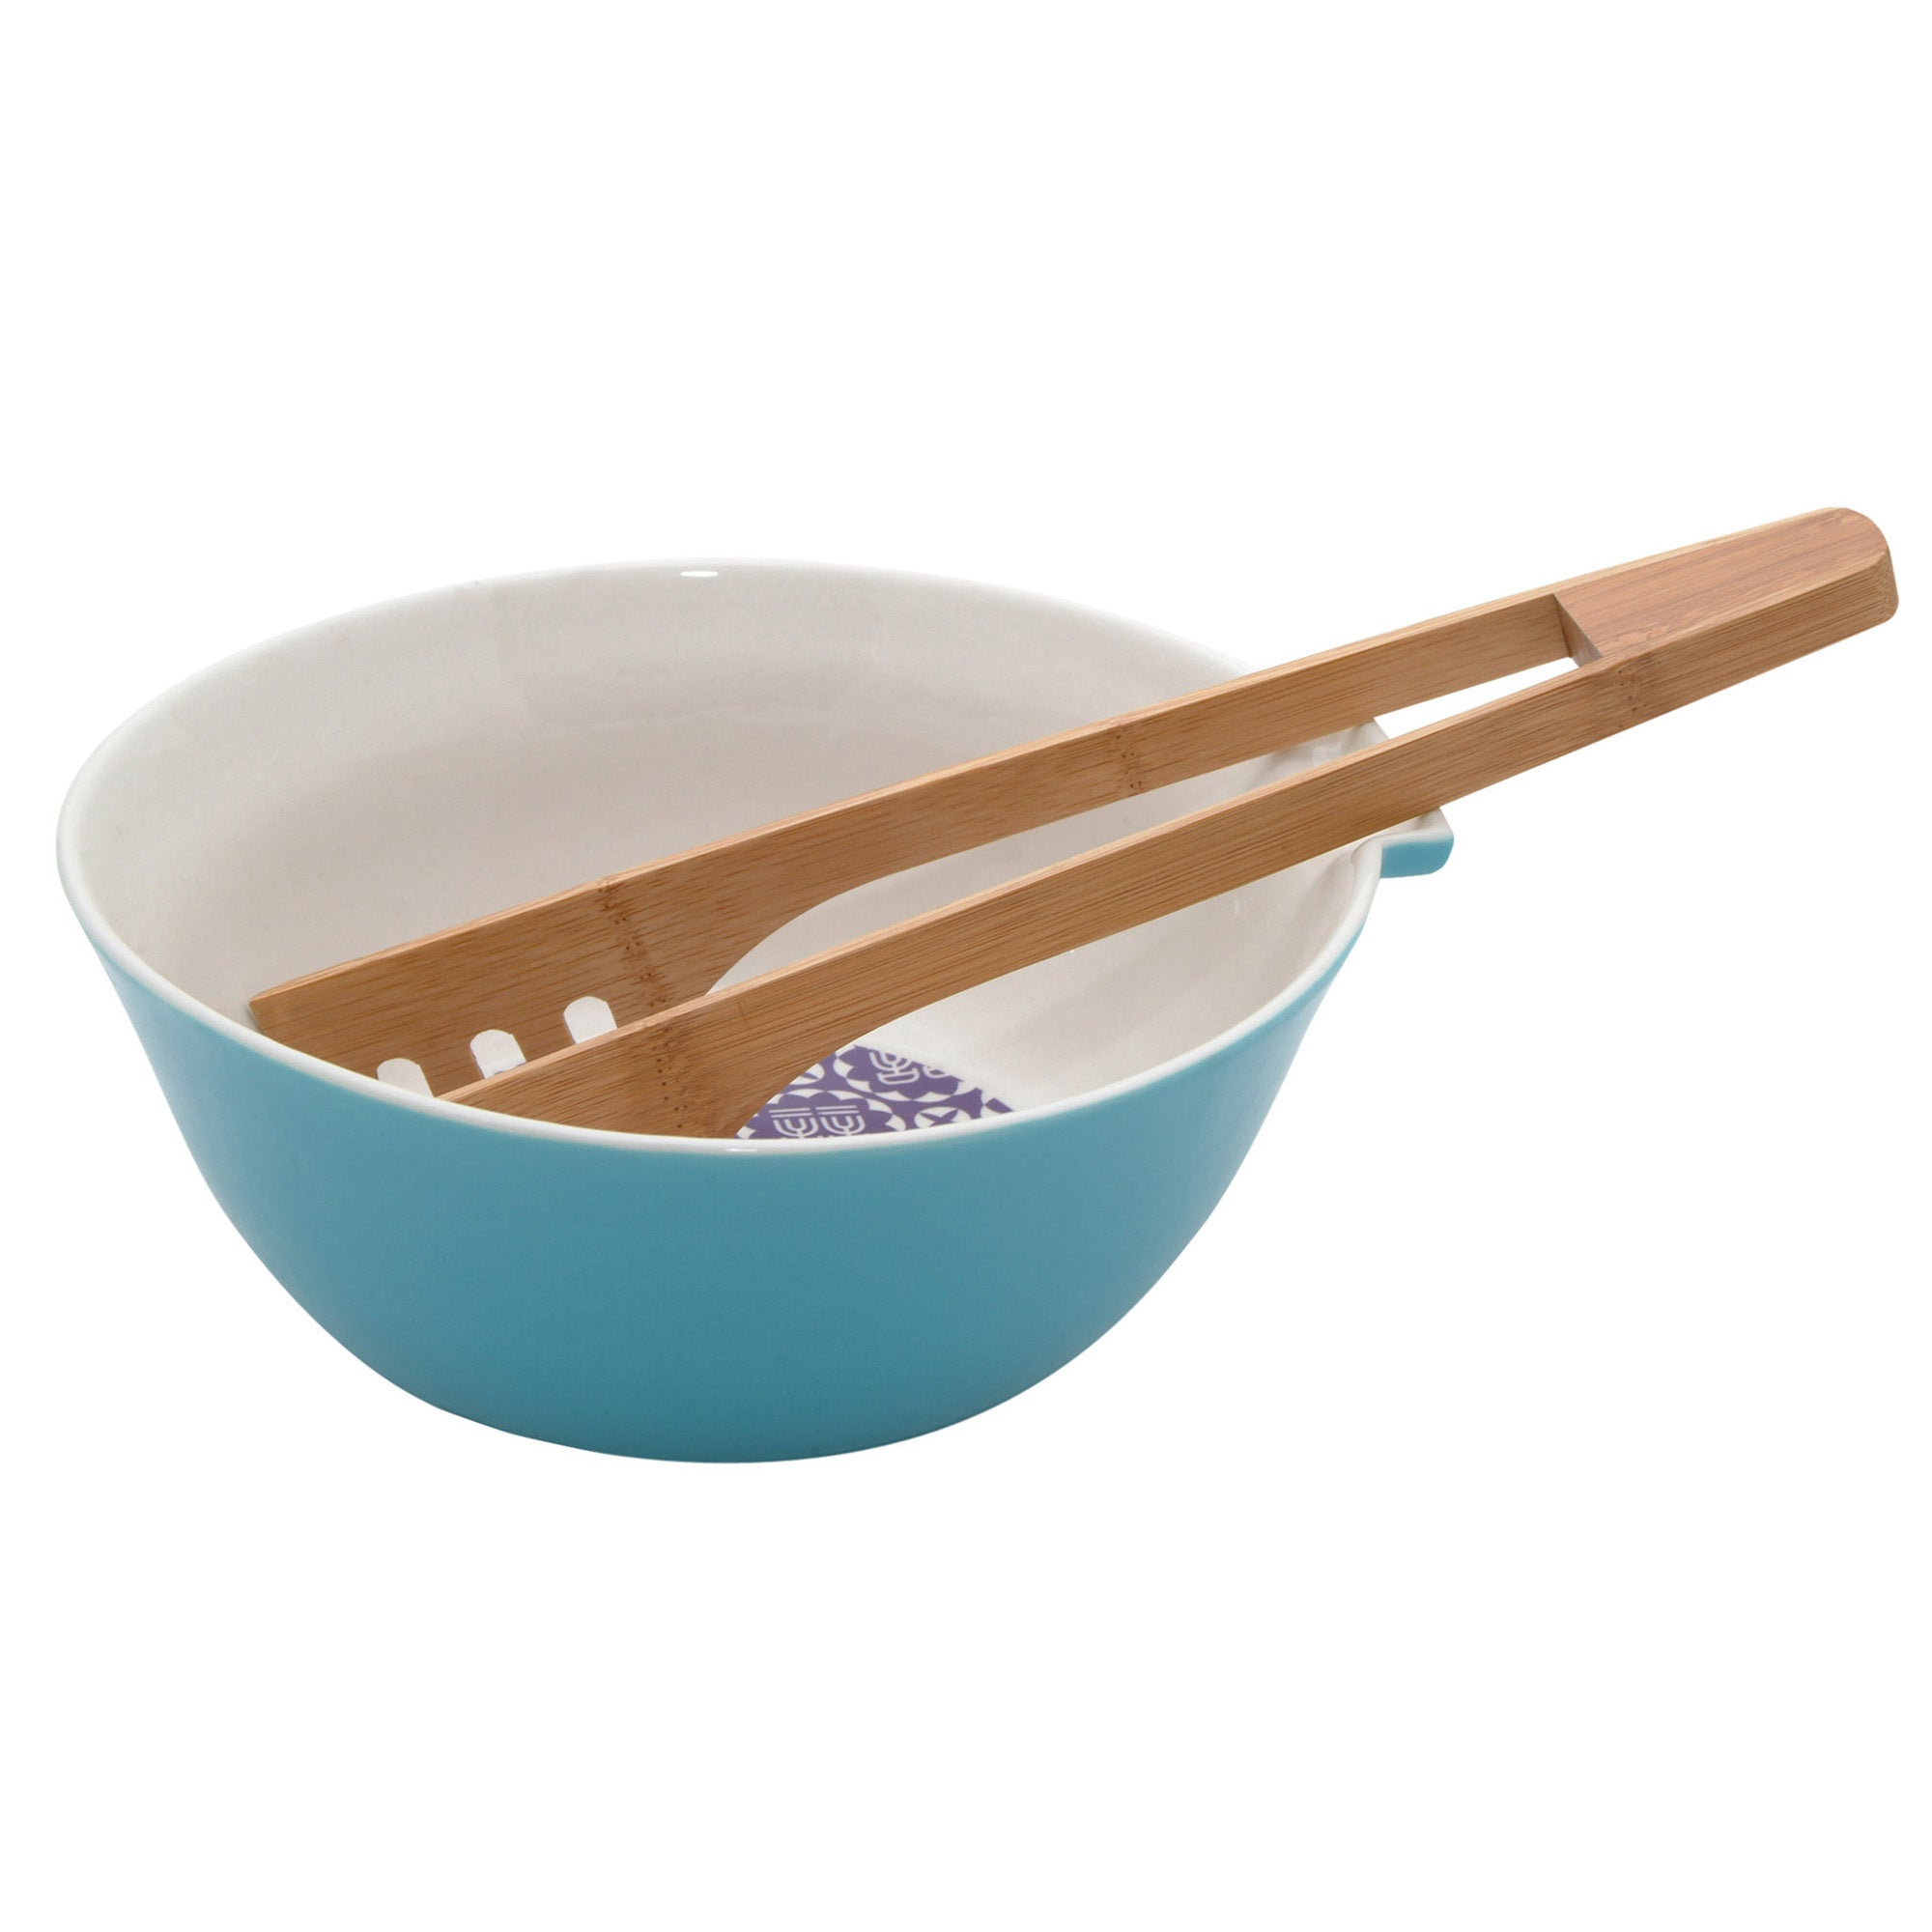 Ching He Huang Collection Serving Bowl with Bamboo Tongs